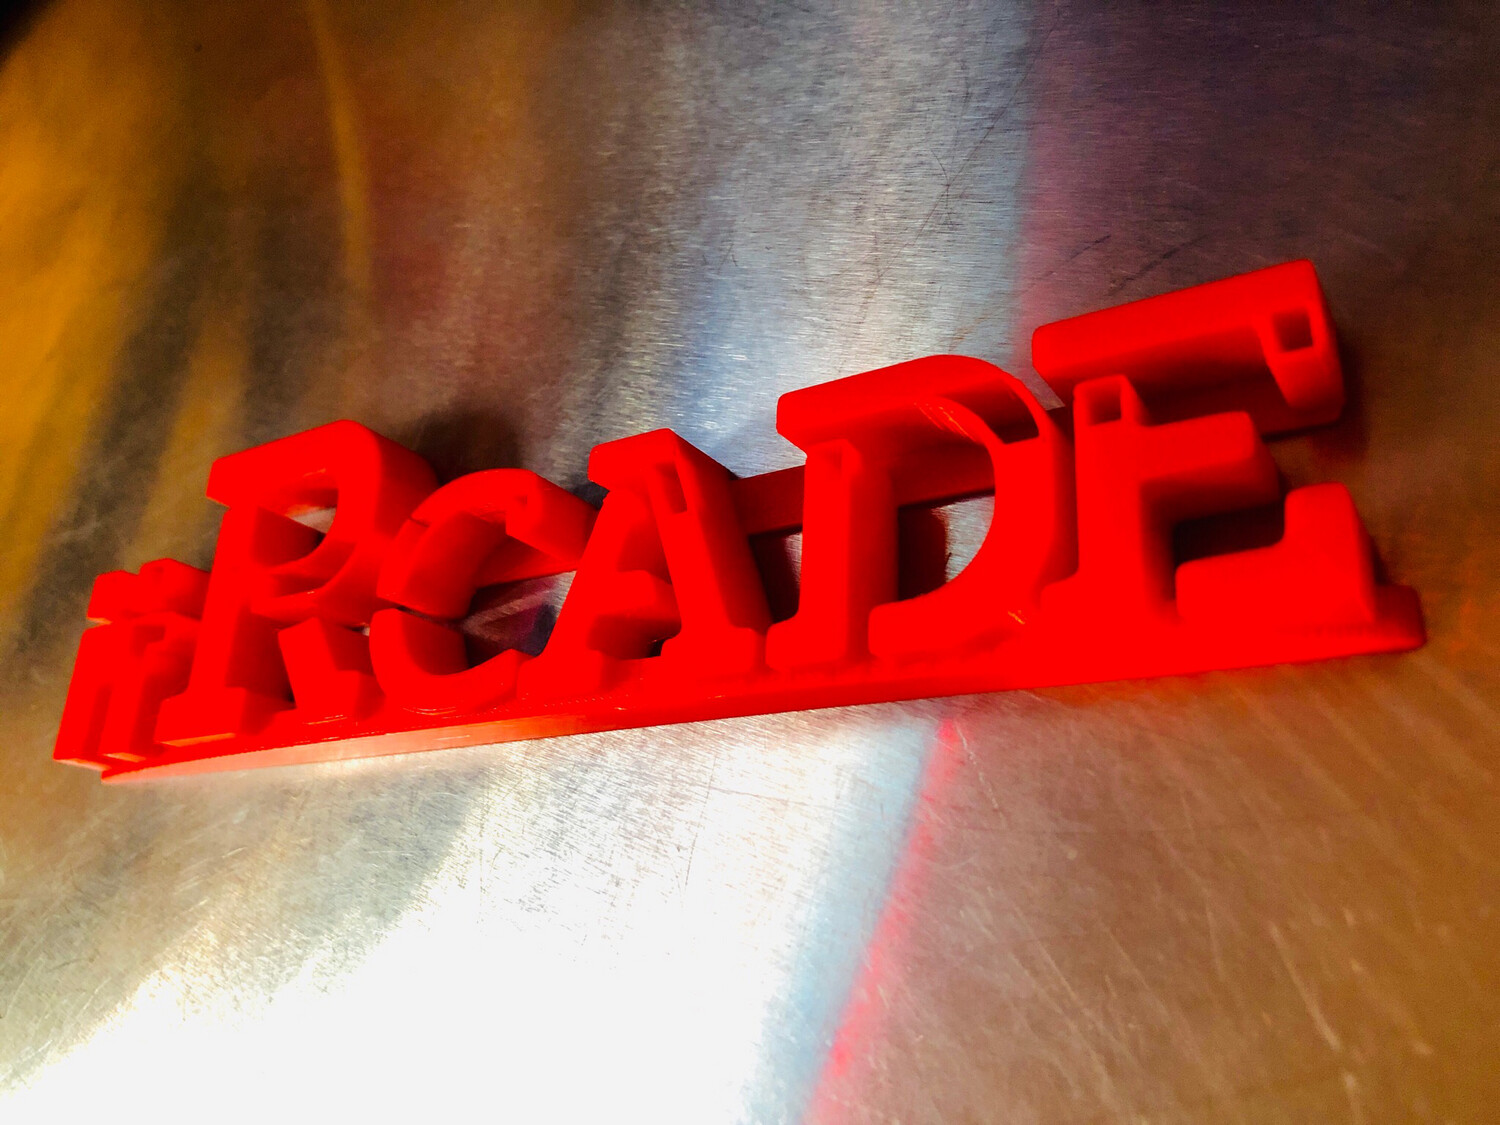 iiRcade LOGO STATUE - Make That New iiRcade Cab really Stand Out! (New Design!)